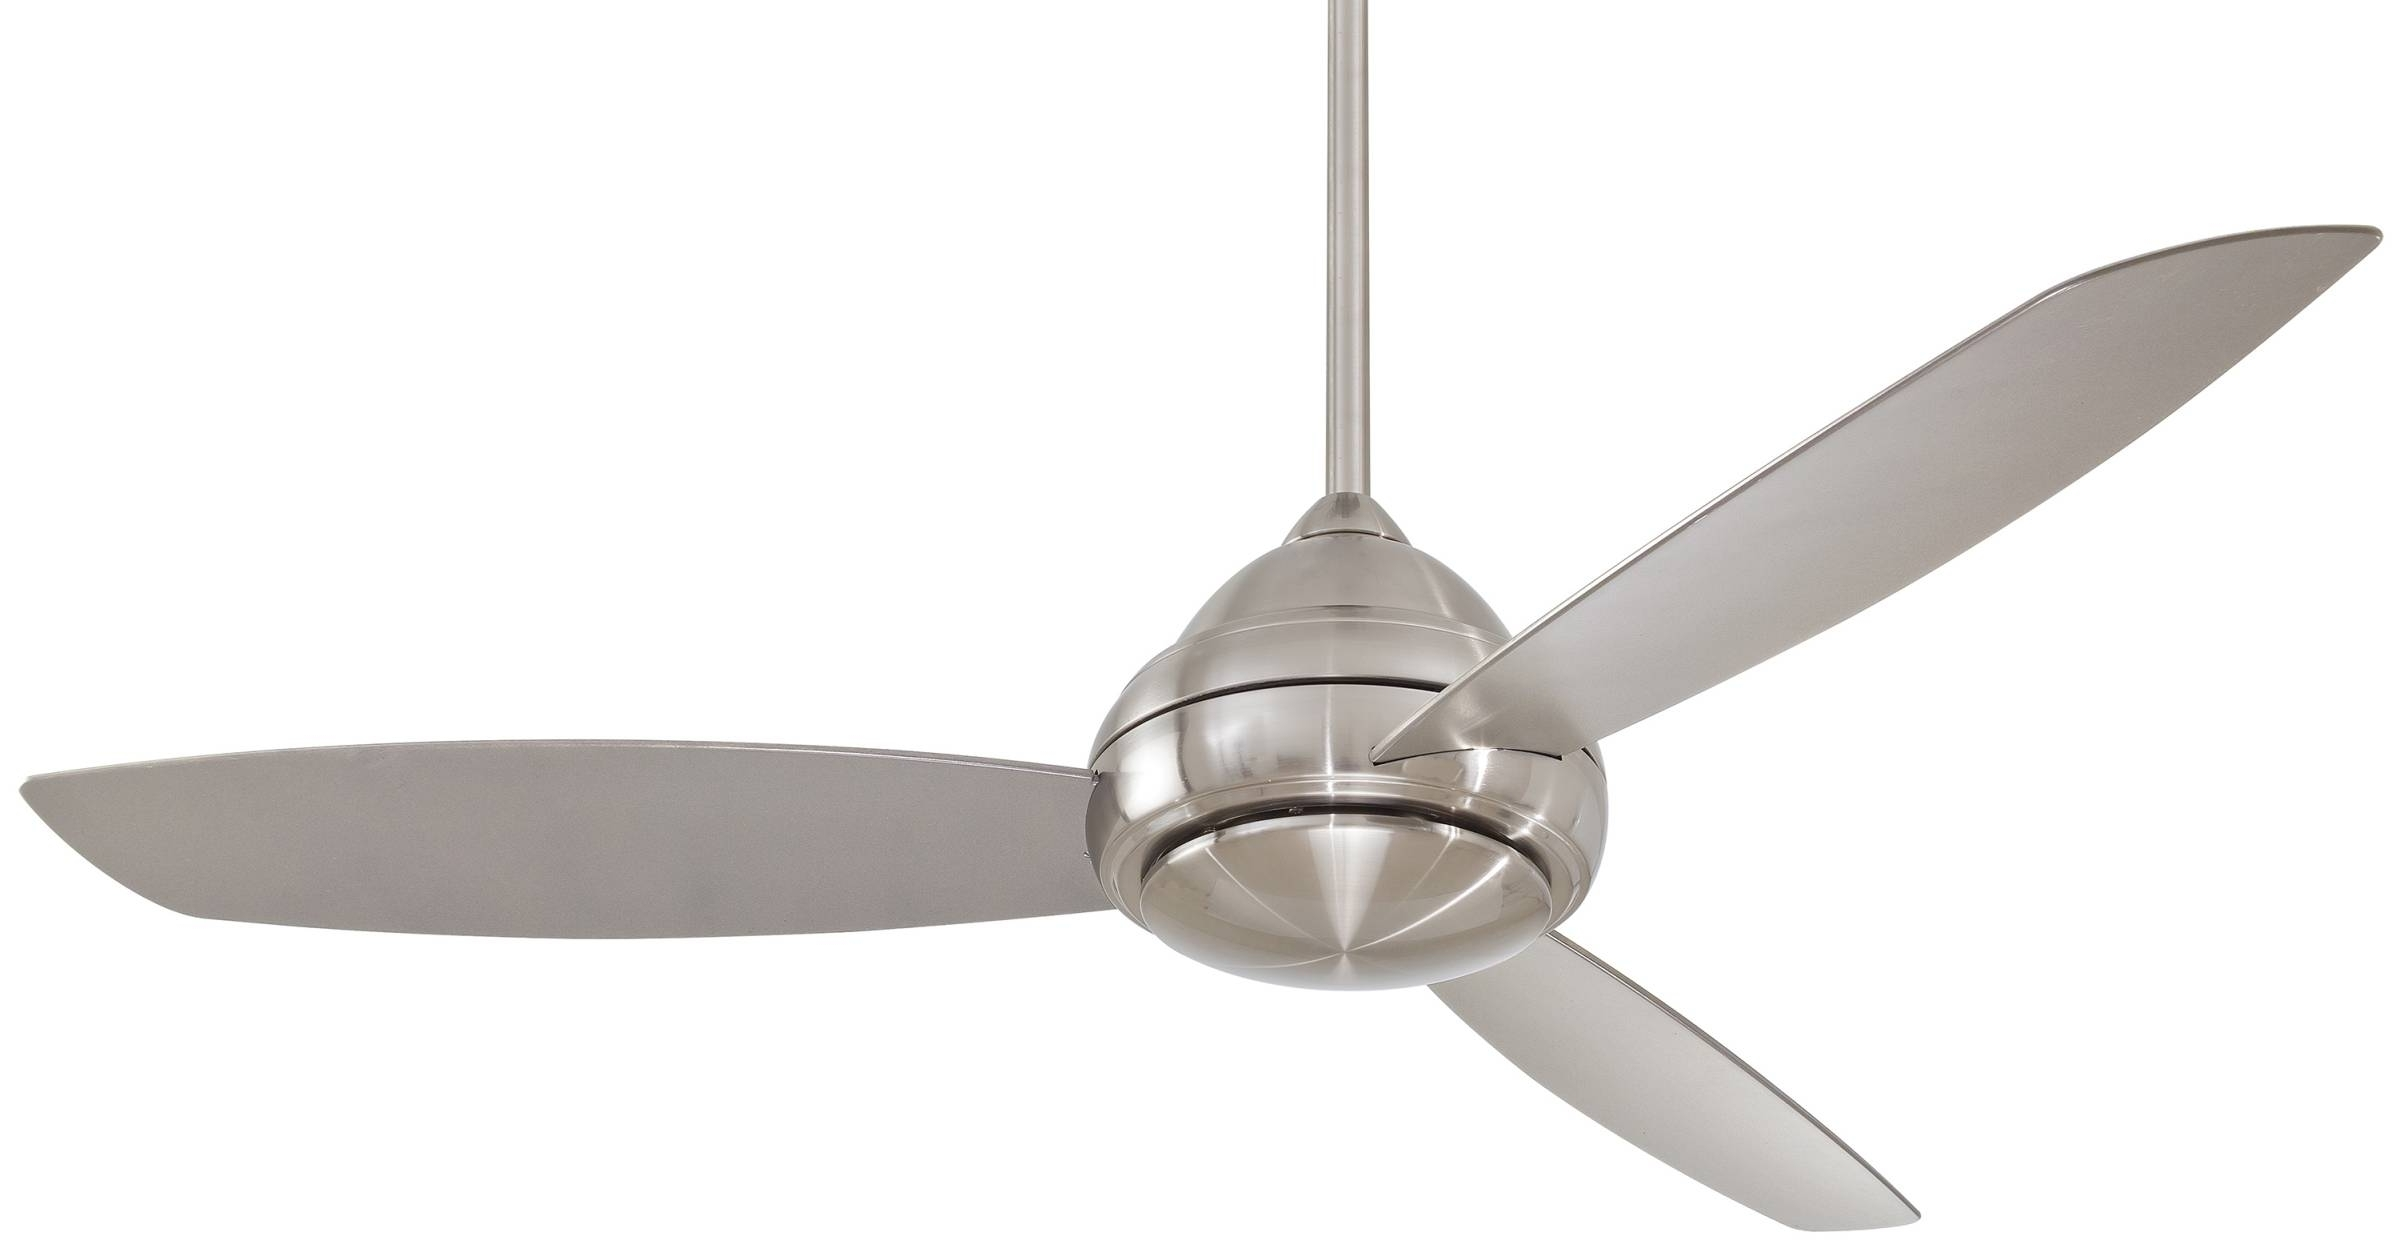 Warisan Intended For Most Current Outdoor Ceiling Fans With Metal Blades (View 19 of 20)